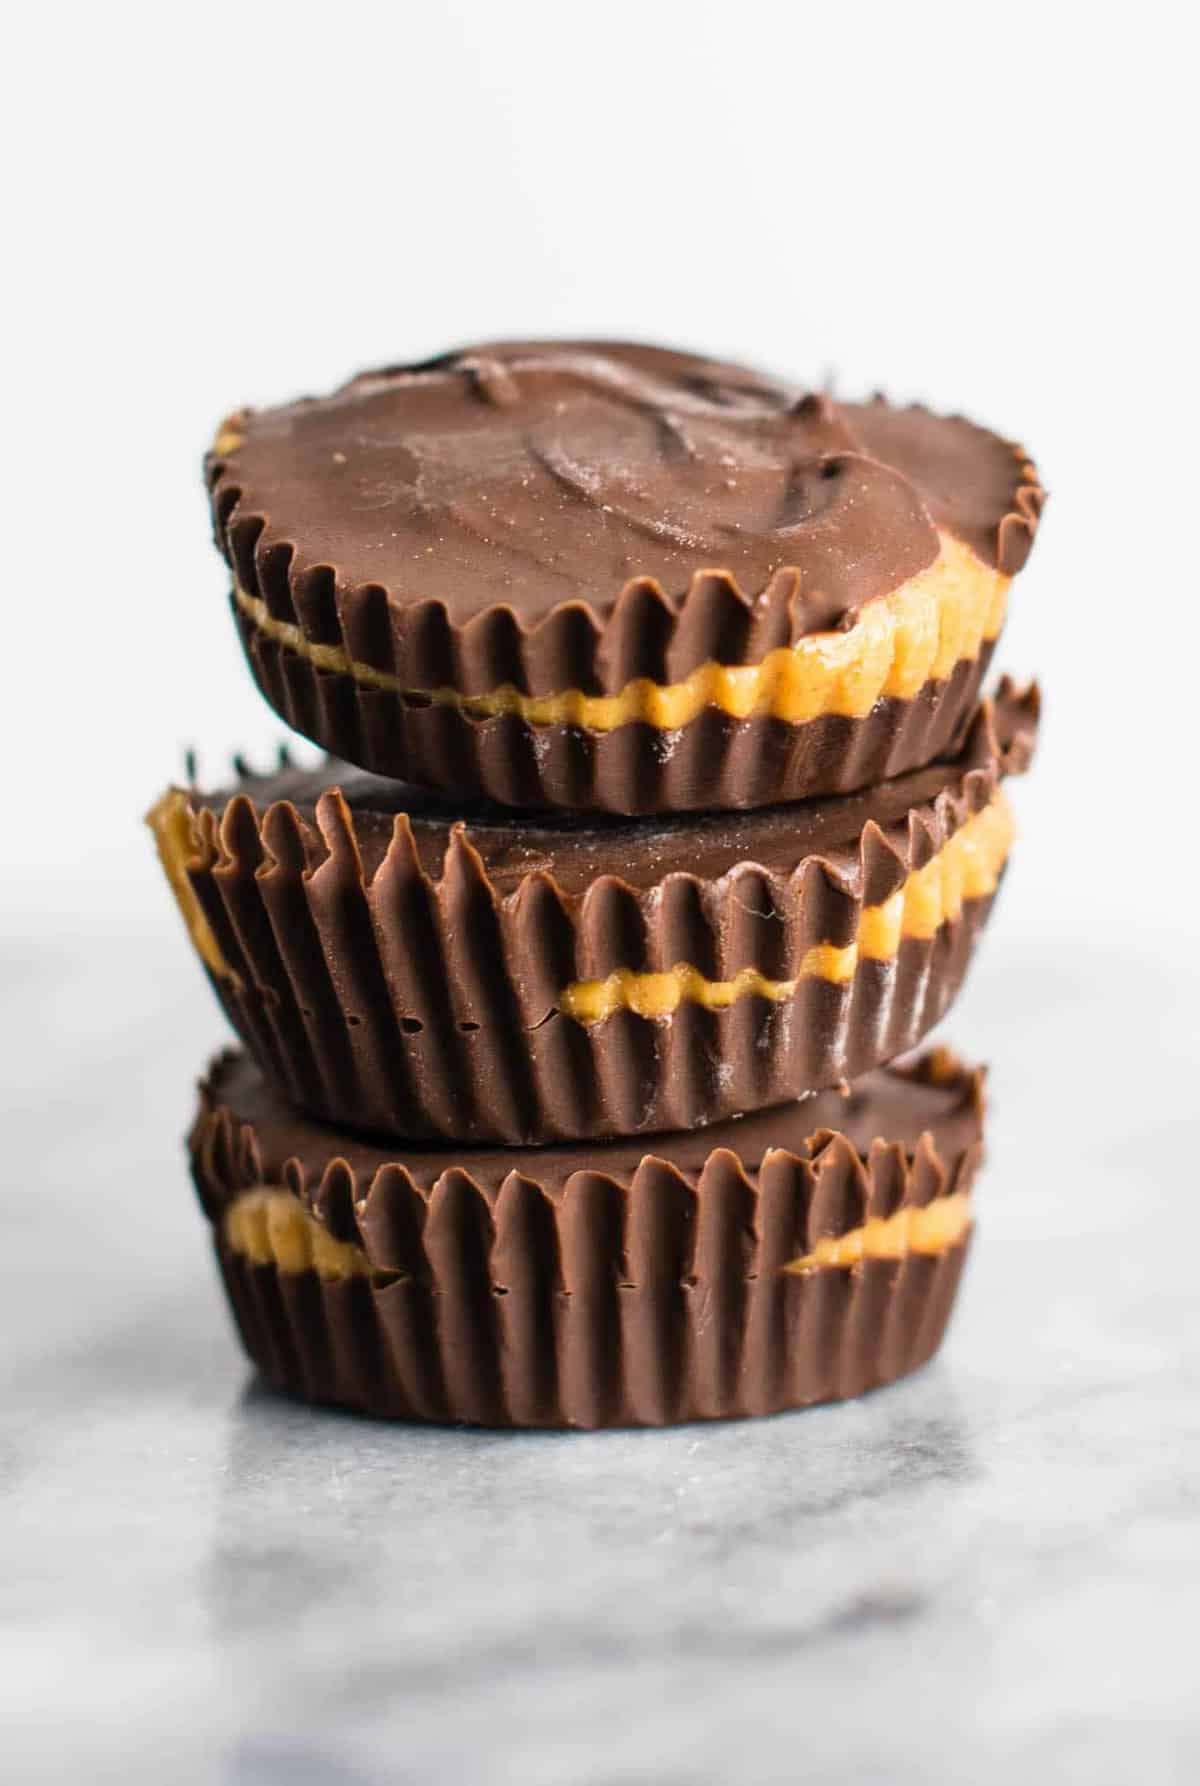 Vegan chocolate peanut butter cups – better than Reese's! #healthy #vegan #chocolatepeanutbuttercups #dessert